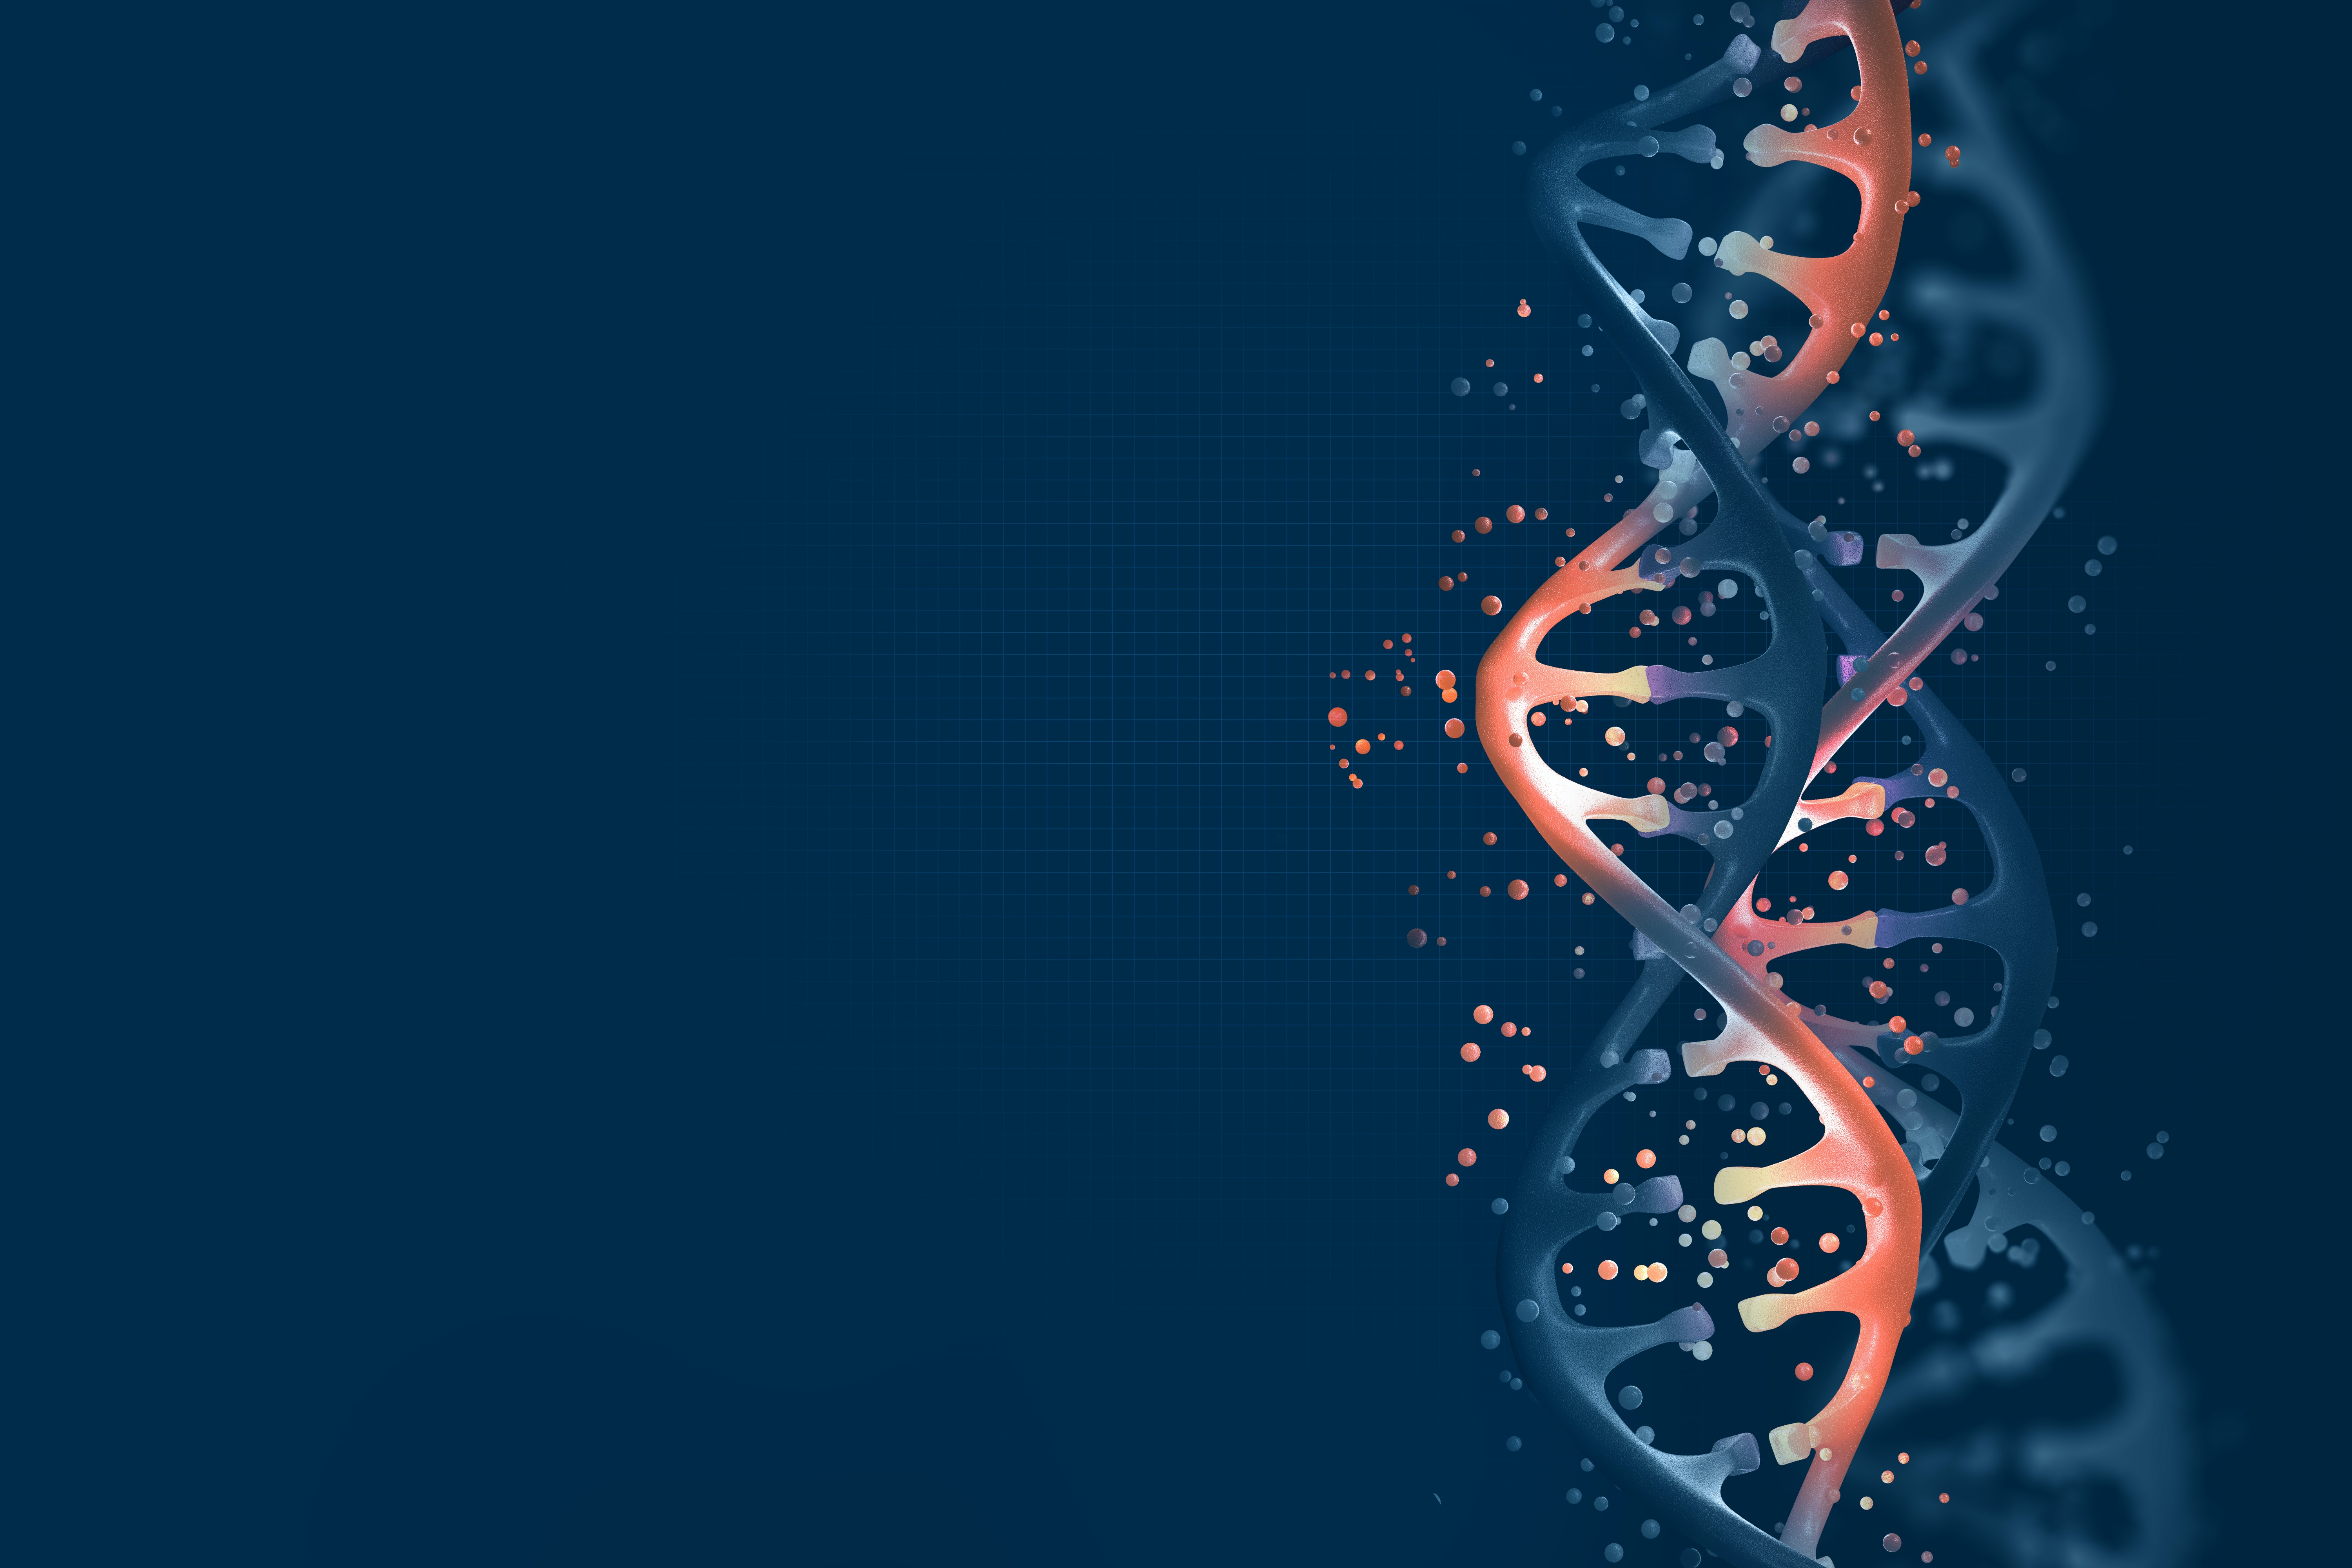 gene therapy is still in its infancy but the future looks promising